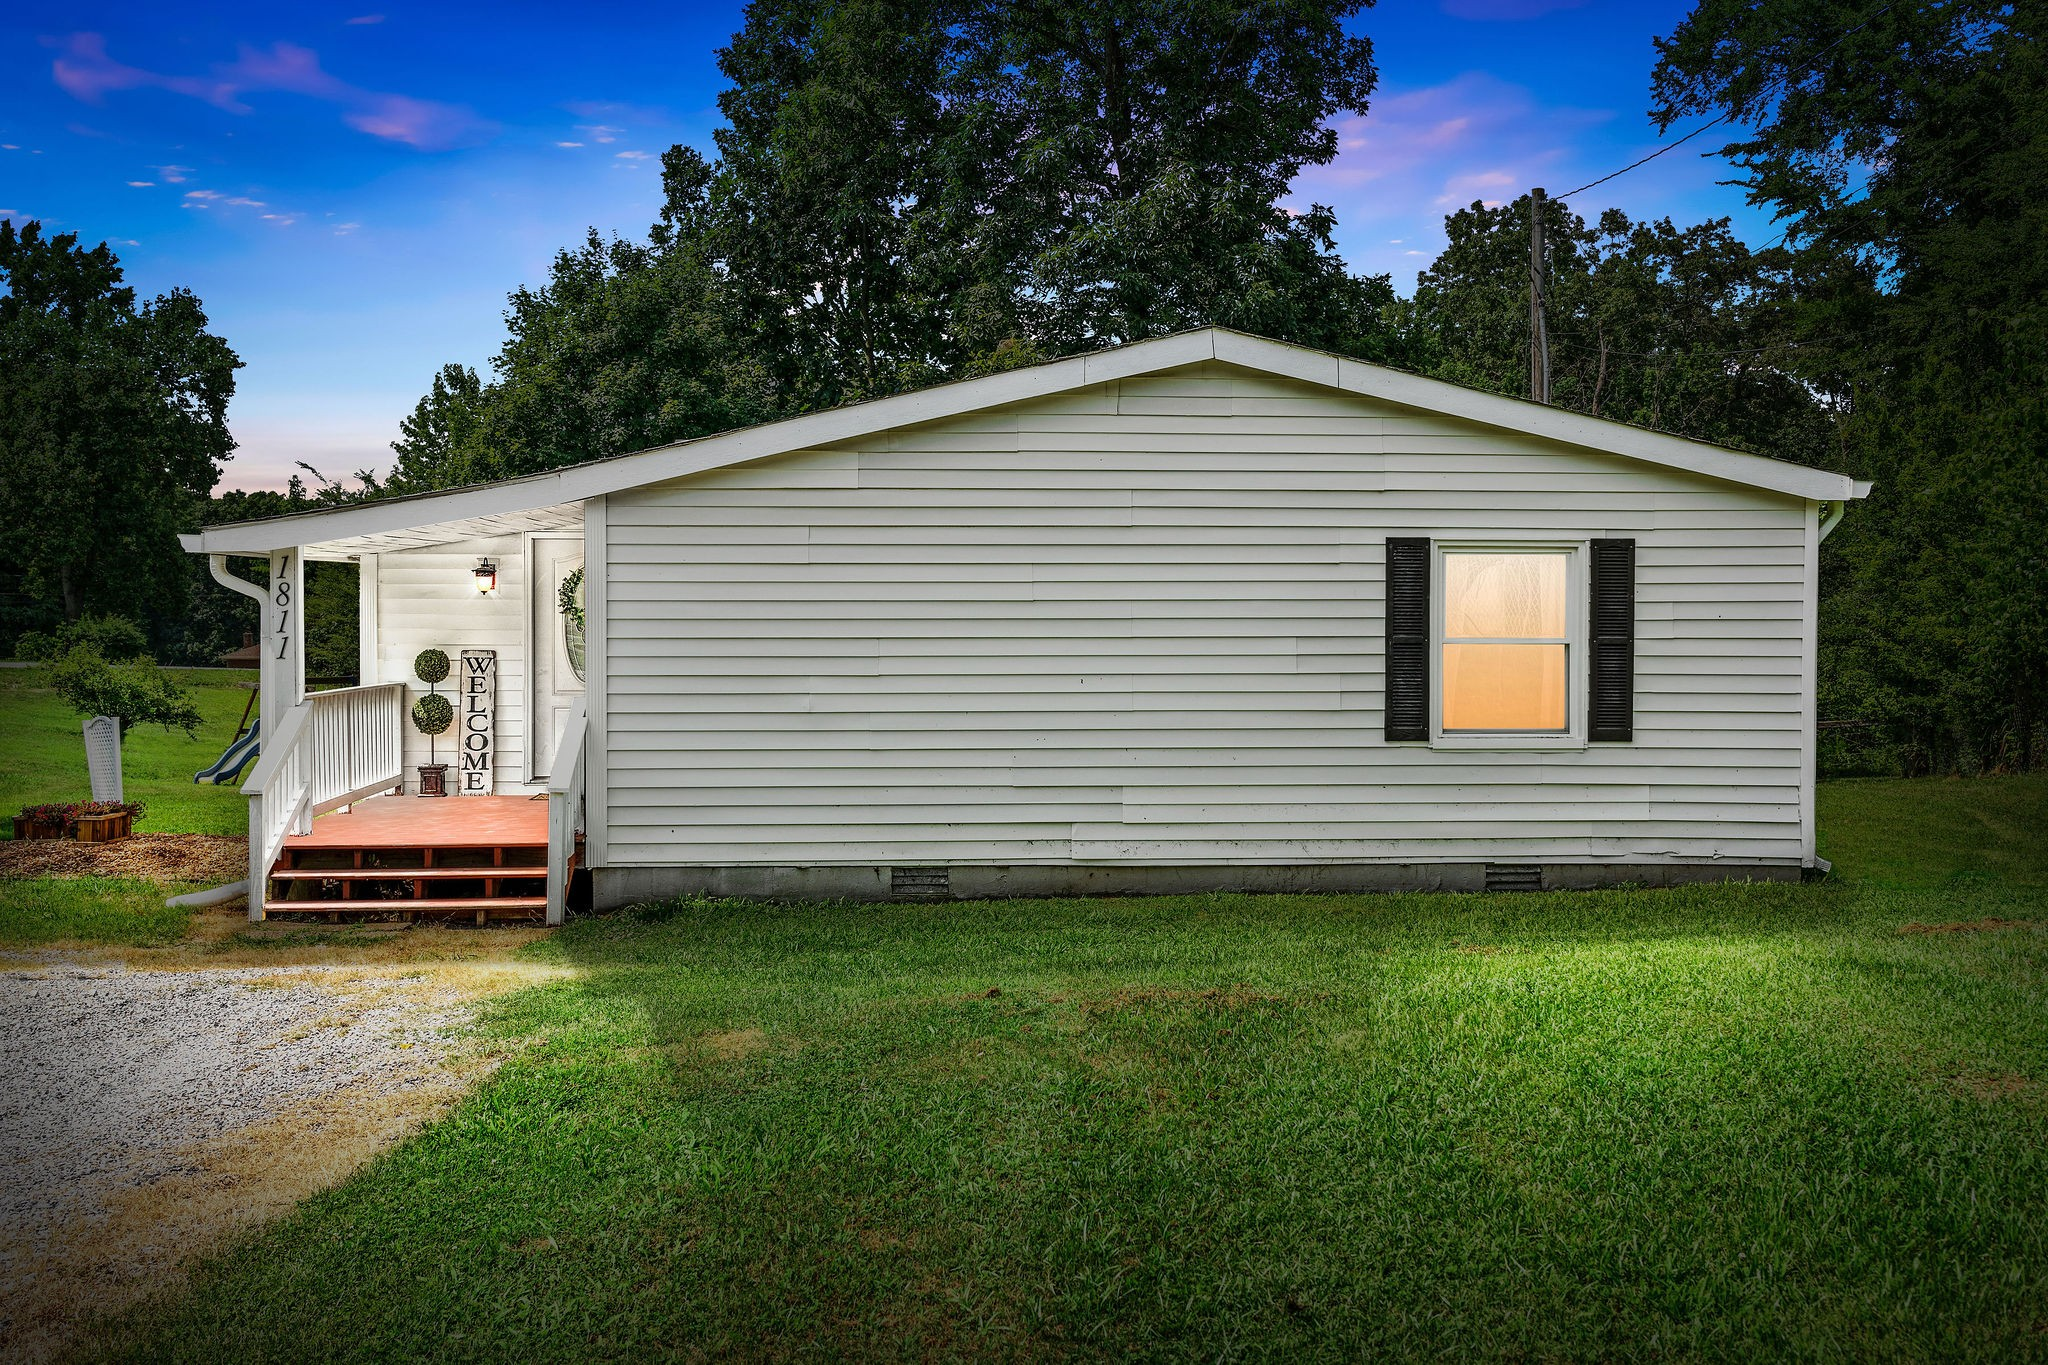 Check Out This Charming County Home Only Minutes to Liberty Park & Downtown Clarksville! - Almost 1/2 Acres Lot - NEW Roof - NEW Flooring - NEW Windows - Newer HVAC Unit Under Warranty! - Fresh Paint - Picture Perfect Kitchen with Stainless Steel Appliances and Custom Cabinetry